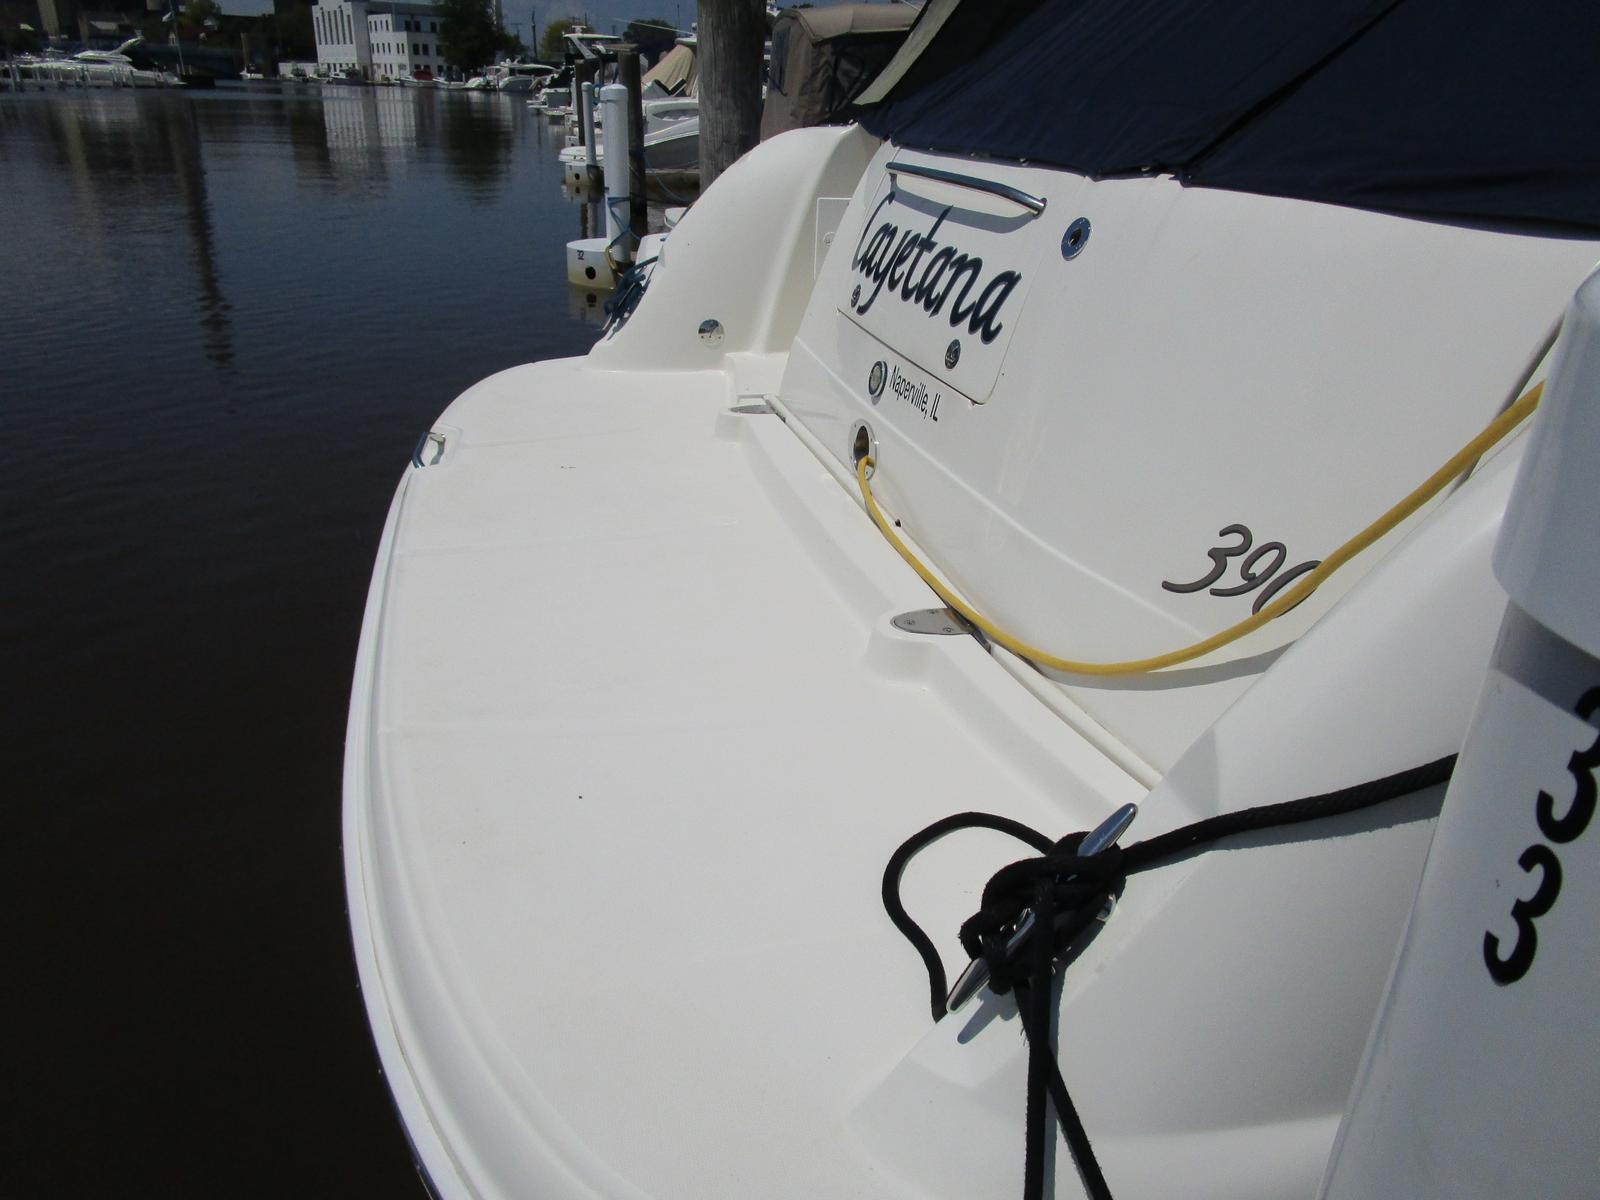 2004 Sea Ray boat for sale, model of the boat is 390 Sundancer & Image # 8 of 8